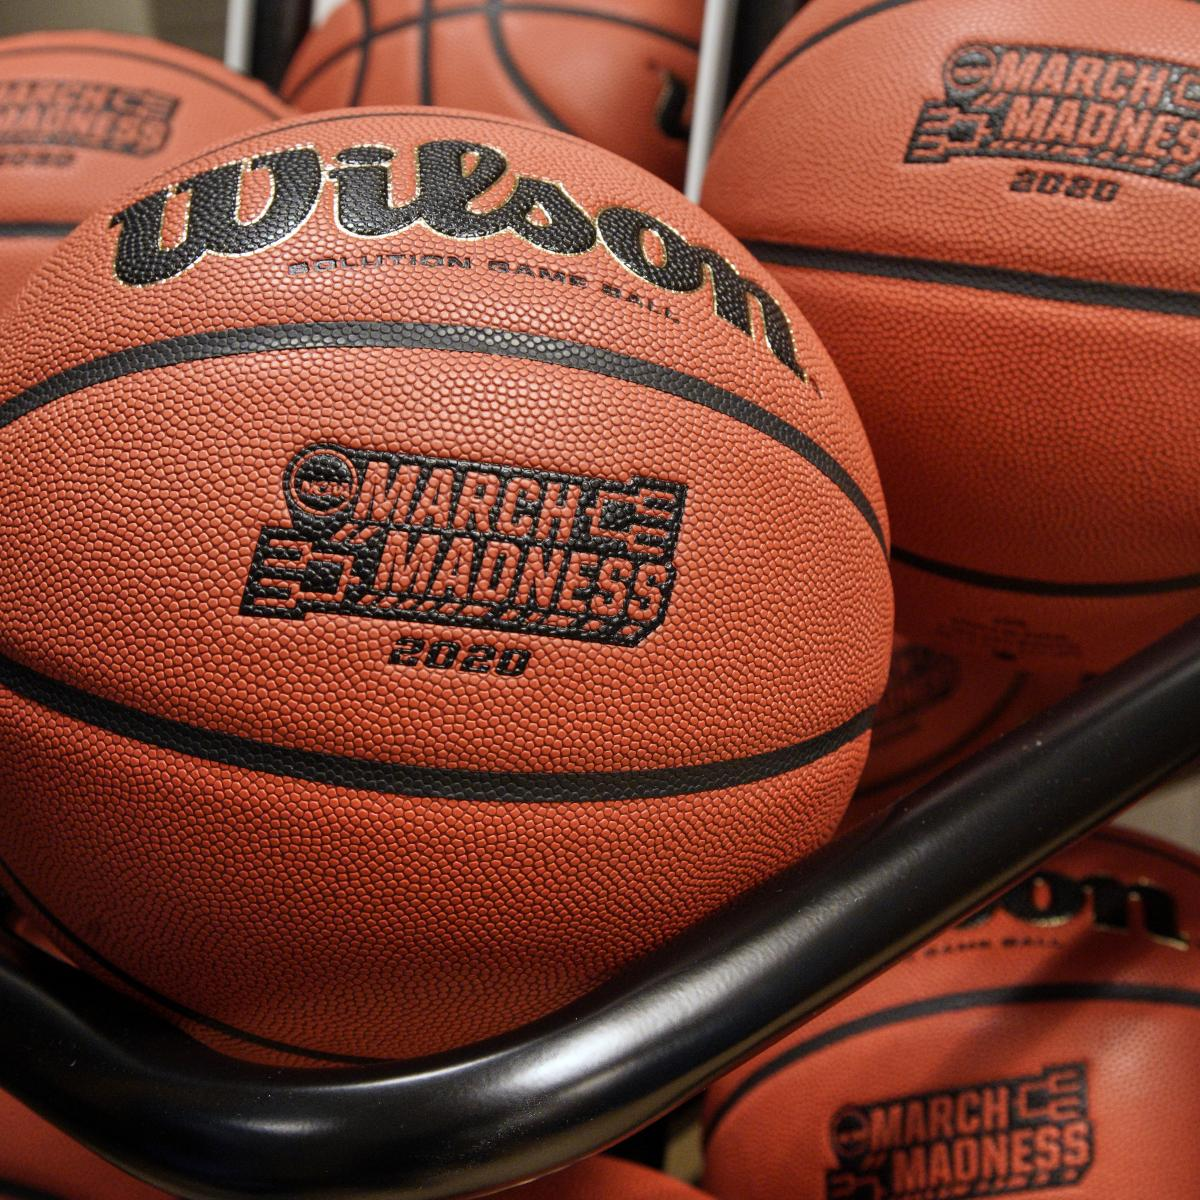 Report: 2020-21 College Basketball Season to Start Nov. 25 After Council Vote – Bleacher Report